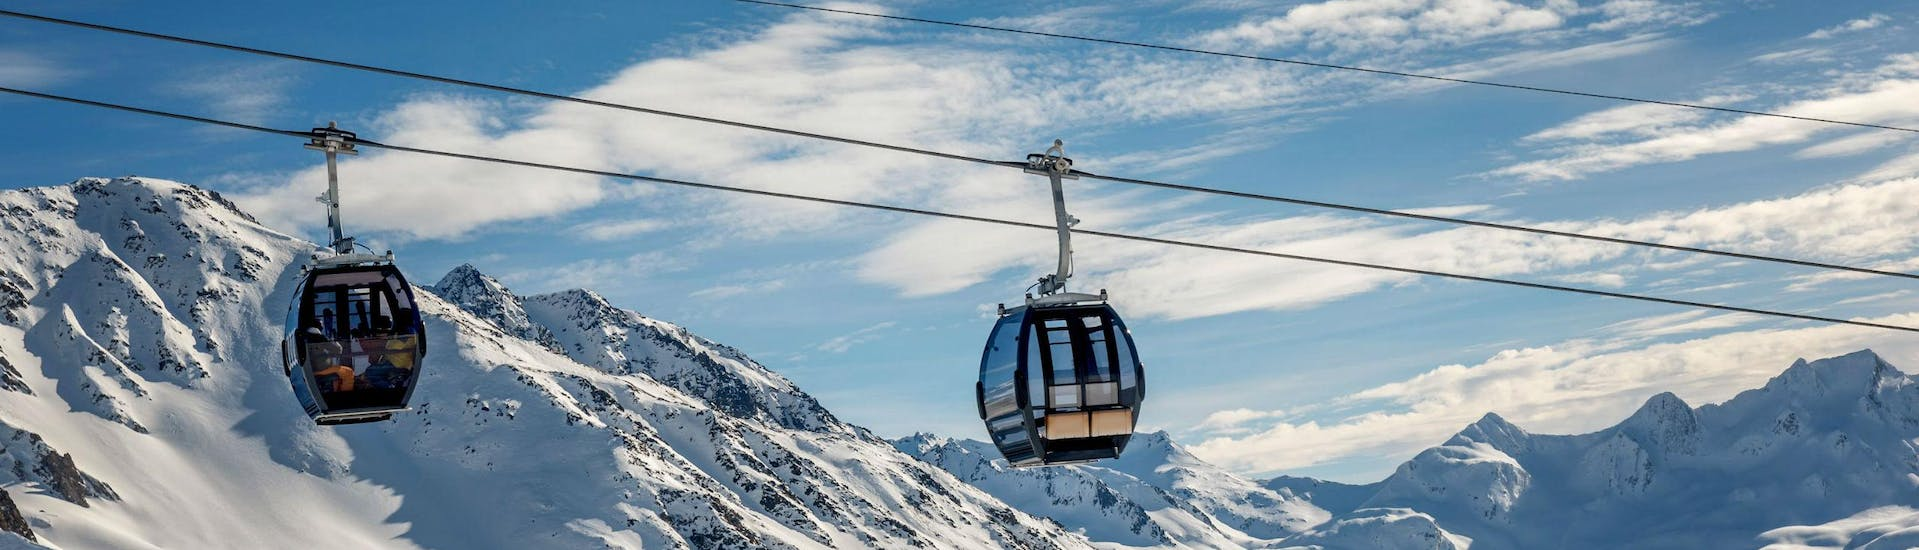 A view of the cable car carrying skiers up to the top of the mountain in the ski resort of Sedrun-Dieni-Oberalp, where local ski schools offer a selection of ski lessons.